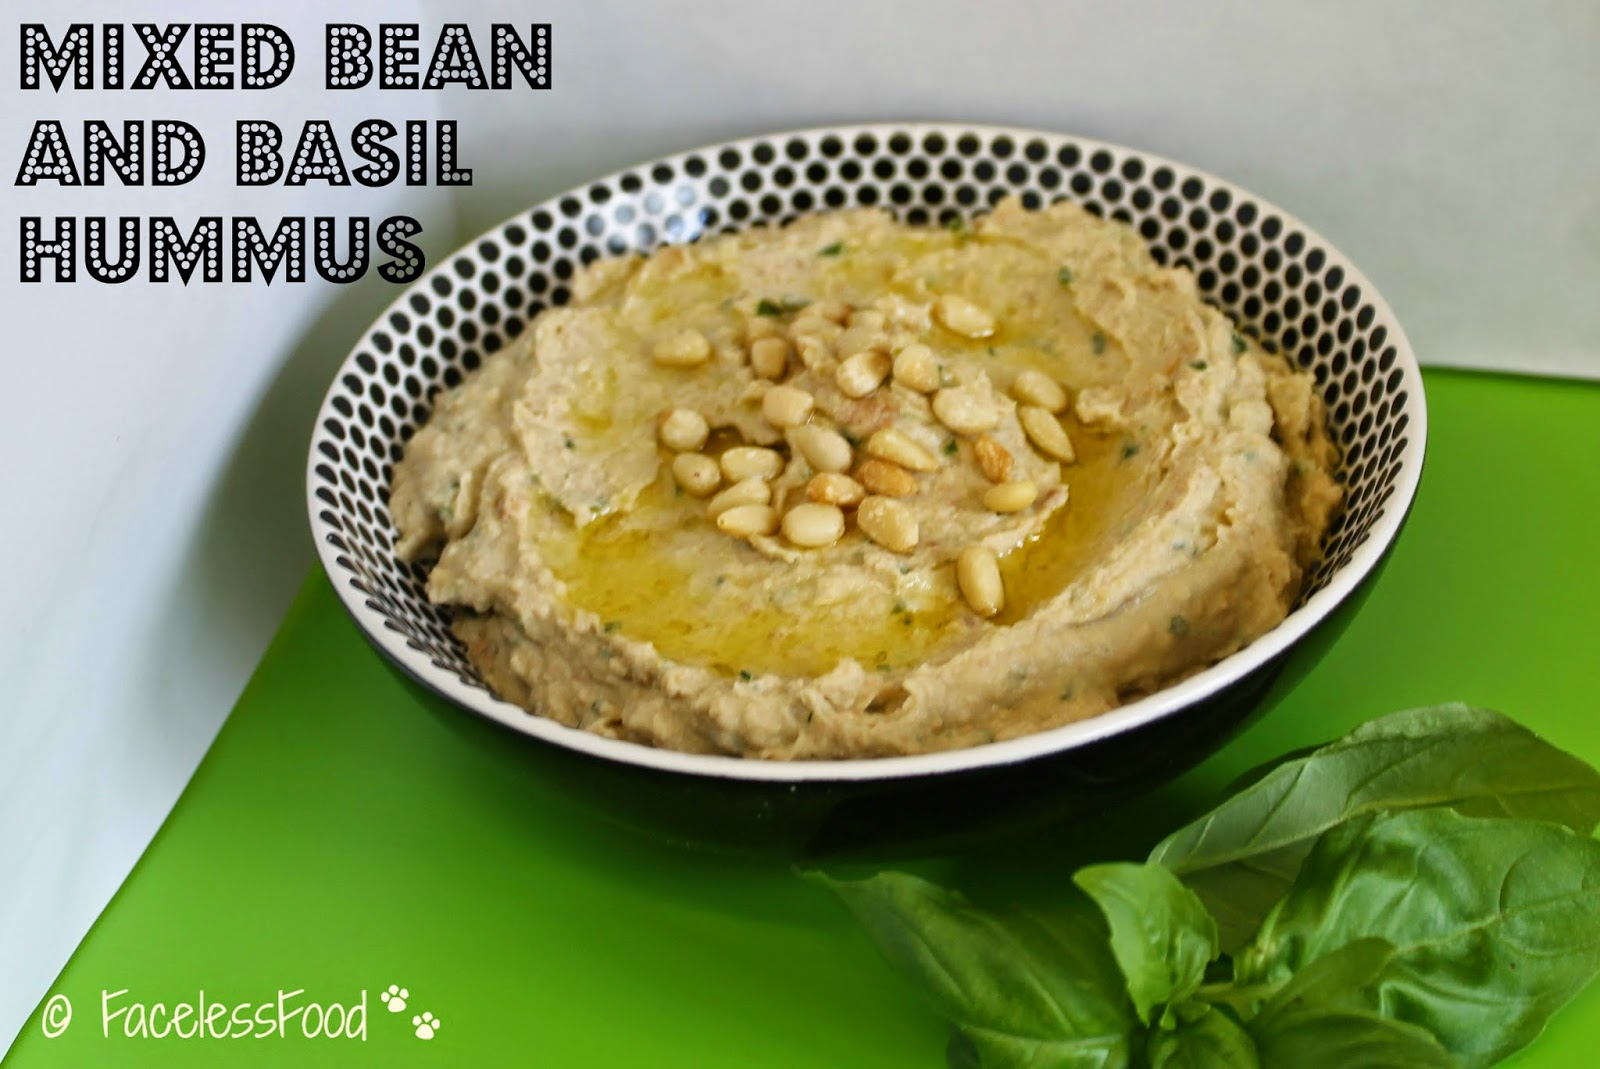 Mixed Bean and Basil Hummus